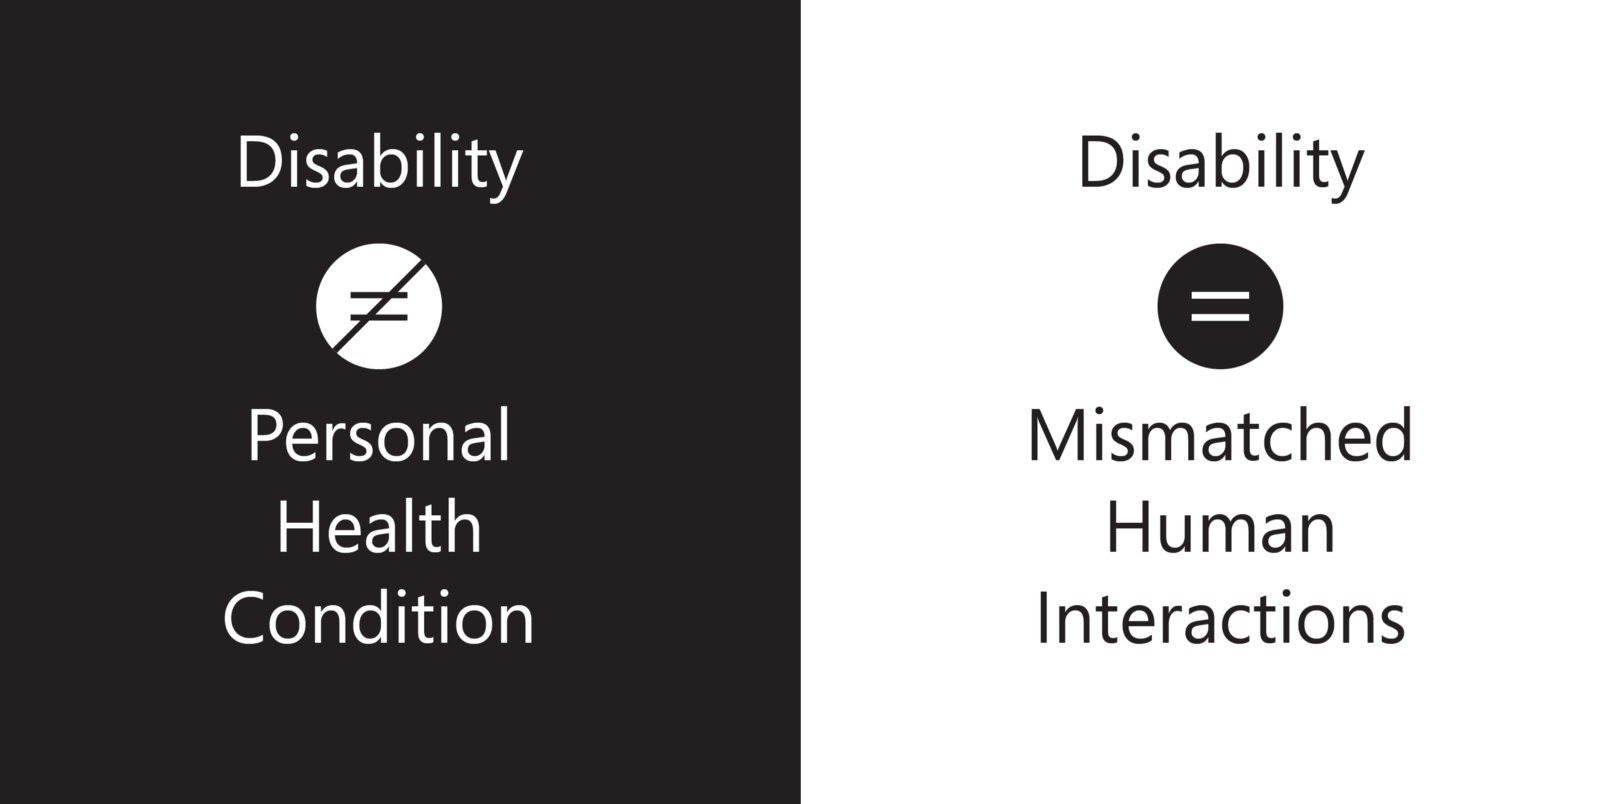 Disibility is not a personal health condition. Disibility is mismatched human interactions